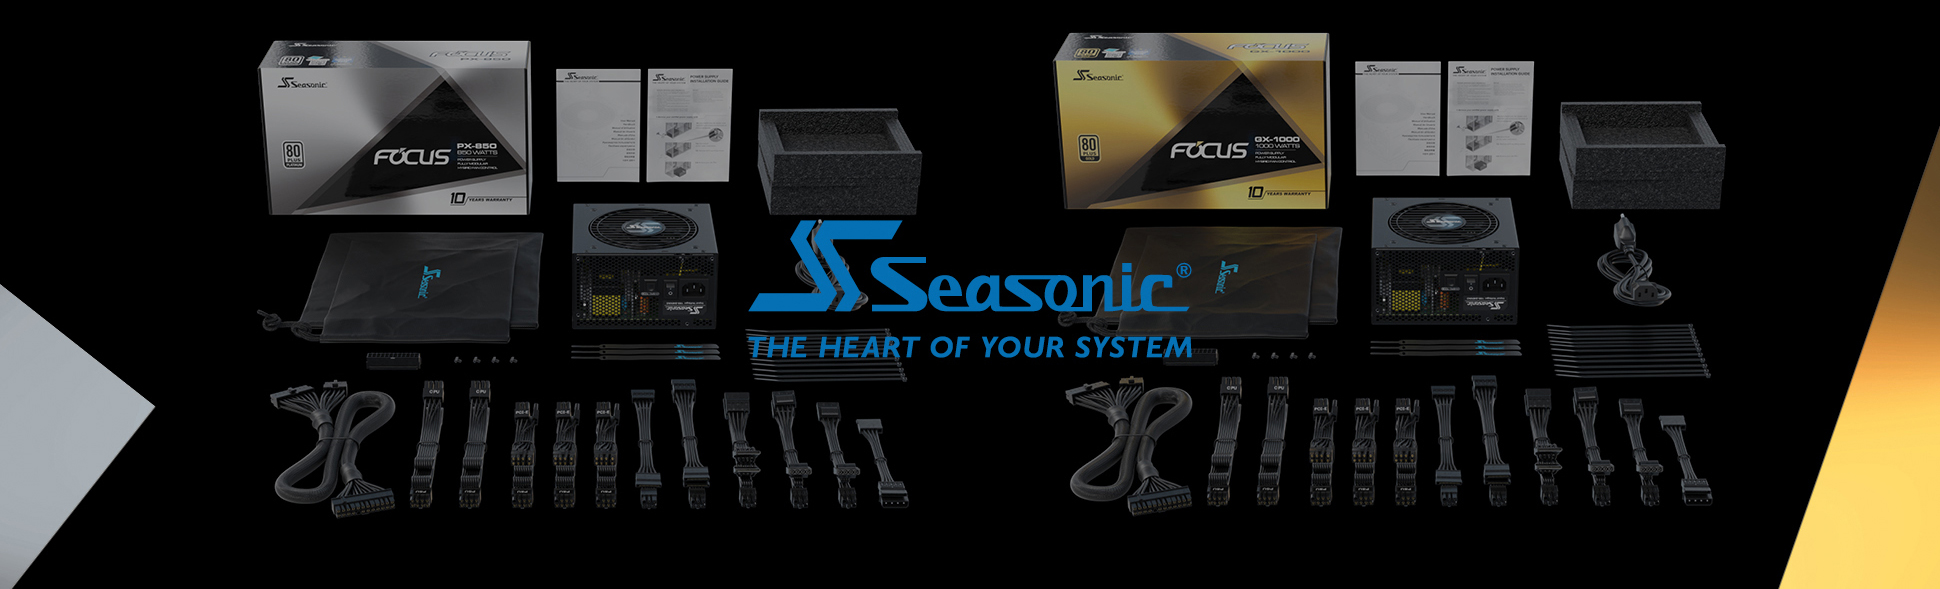 Seasonic Focus and Packing box and cables and accessories